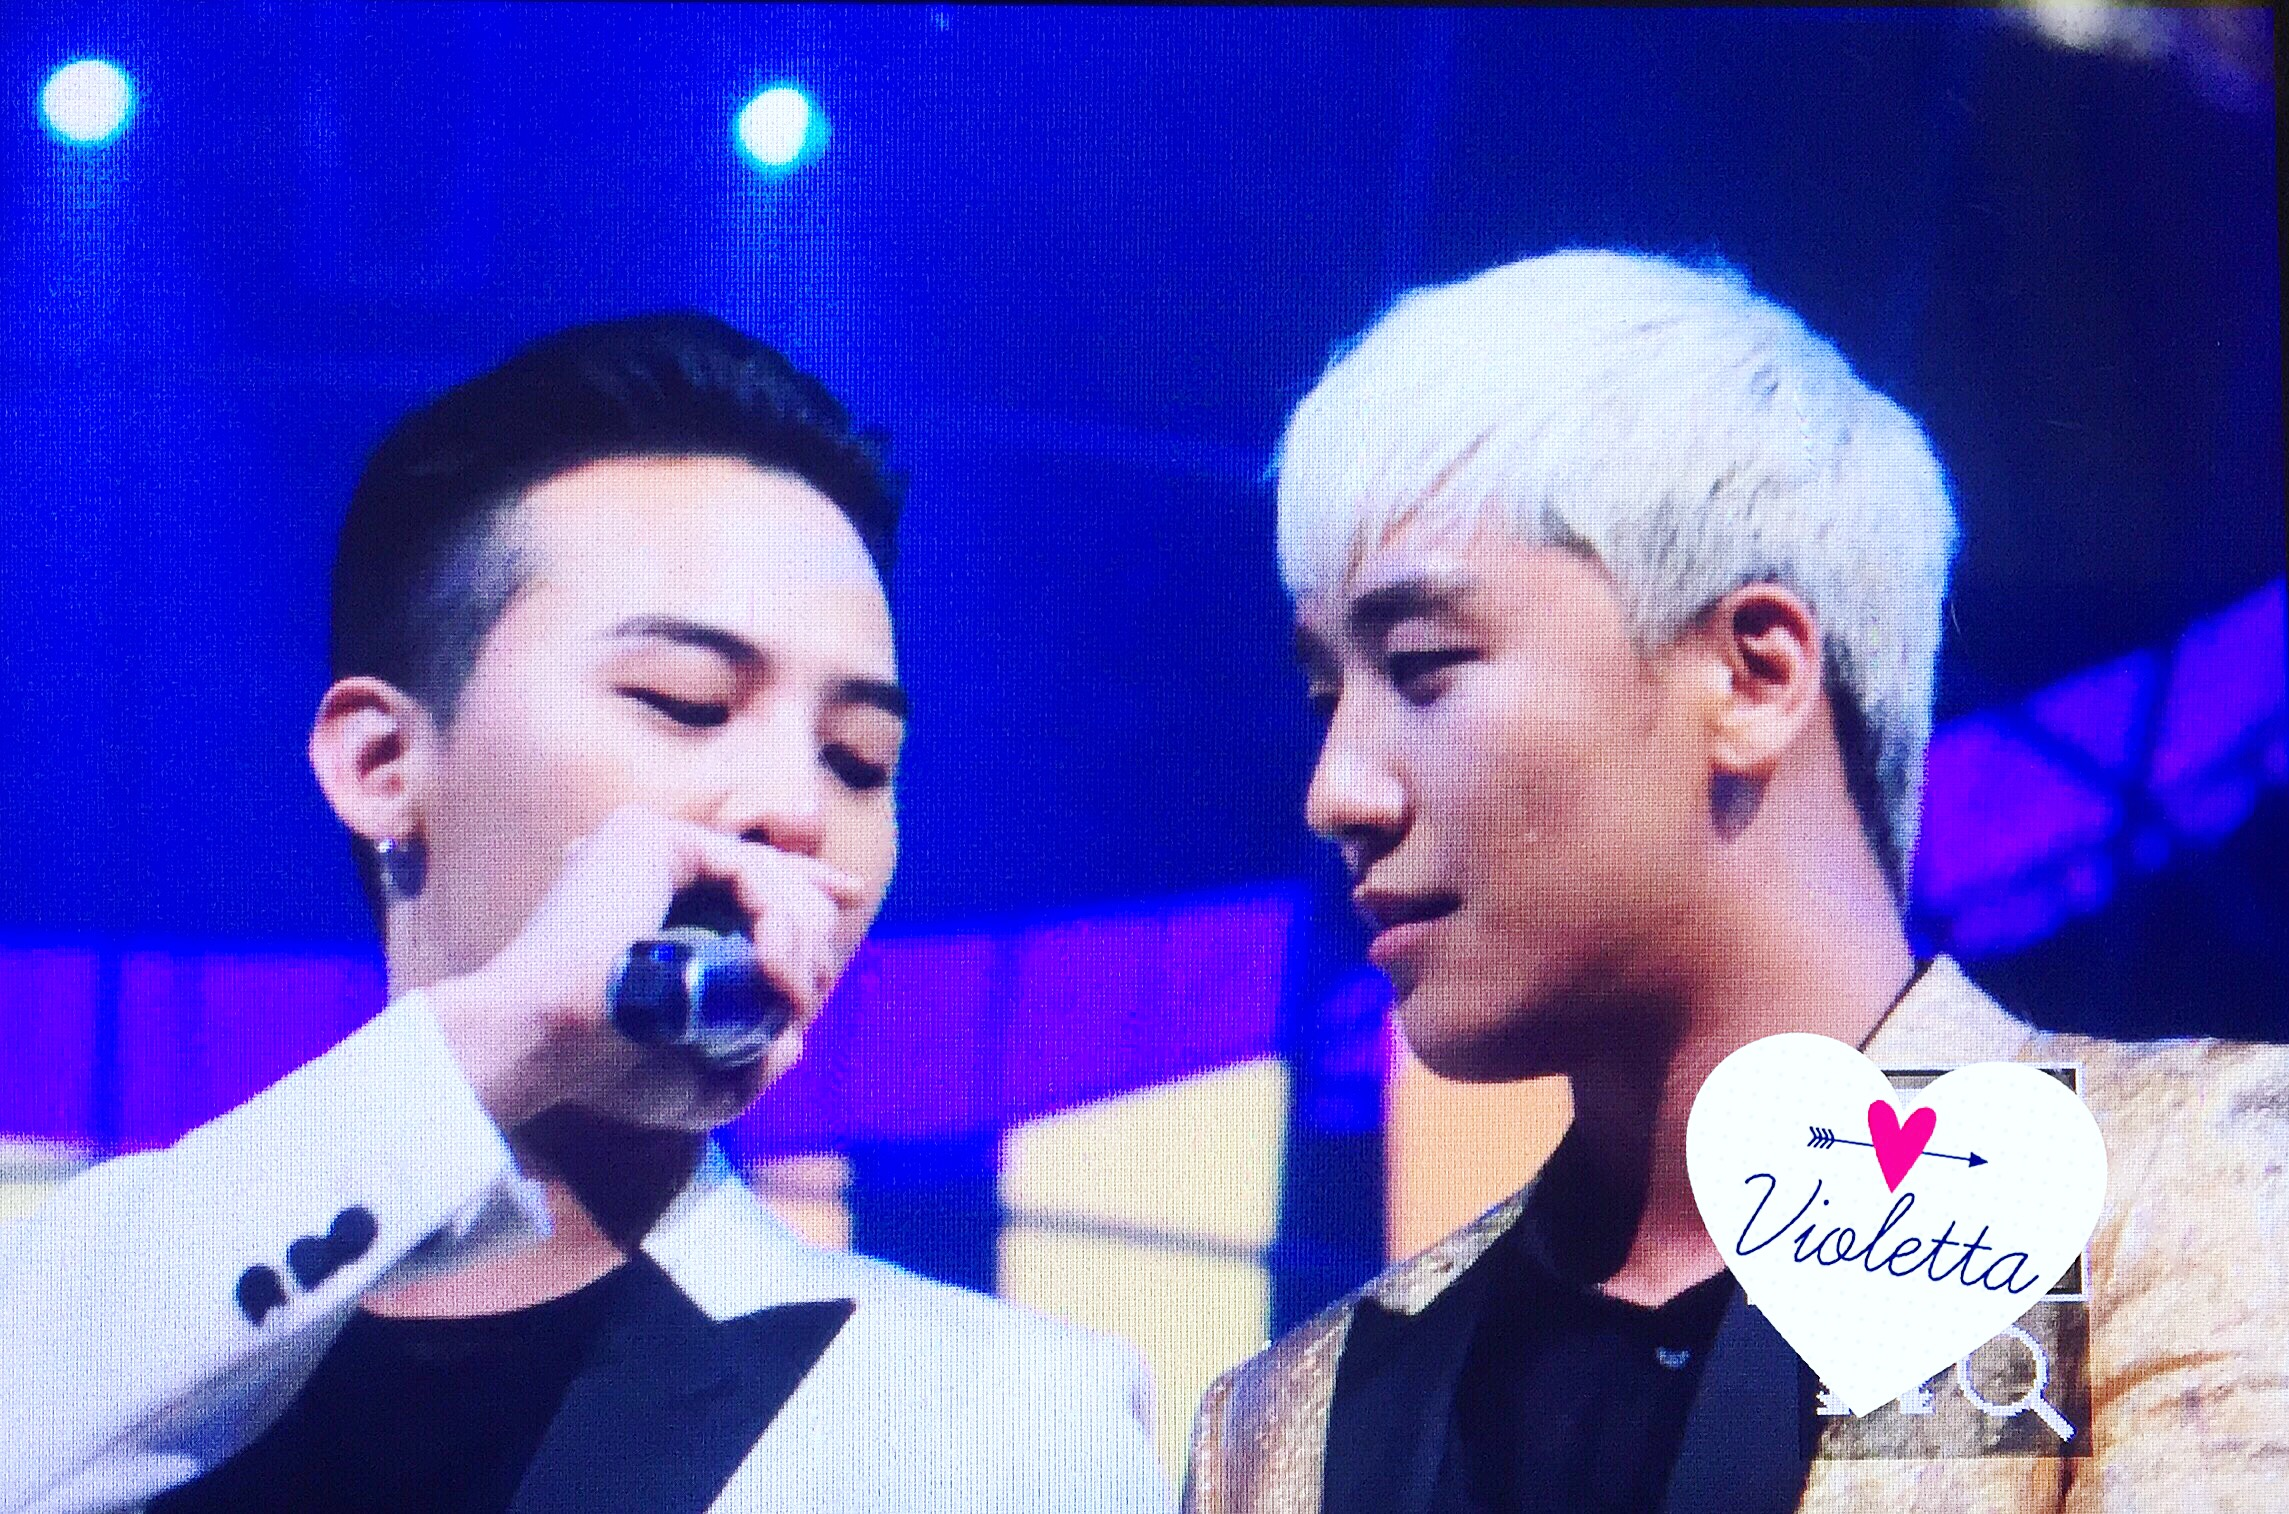 BIGBANG Hunan TV 2015-12-31 By Violetta_1212 (6)